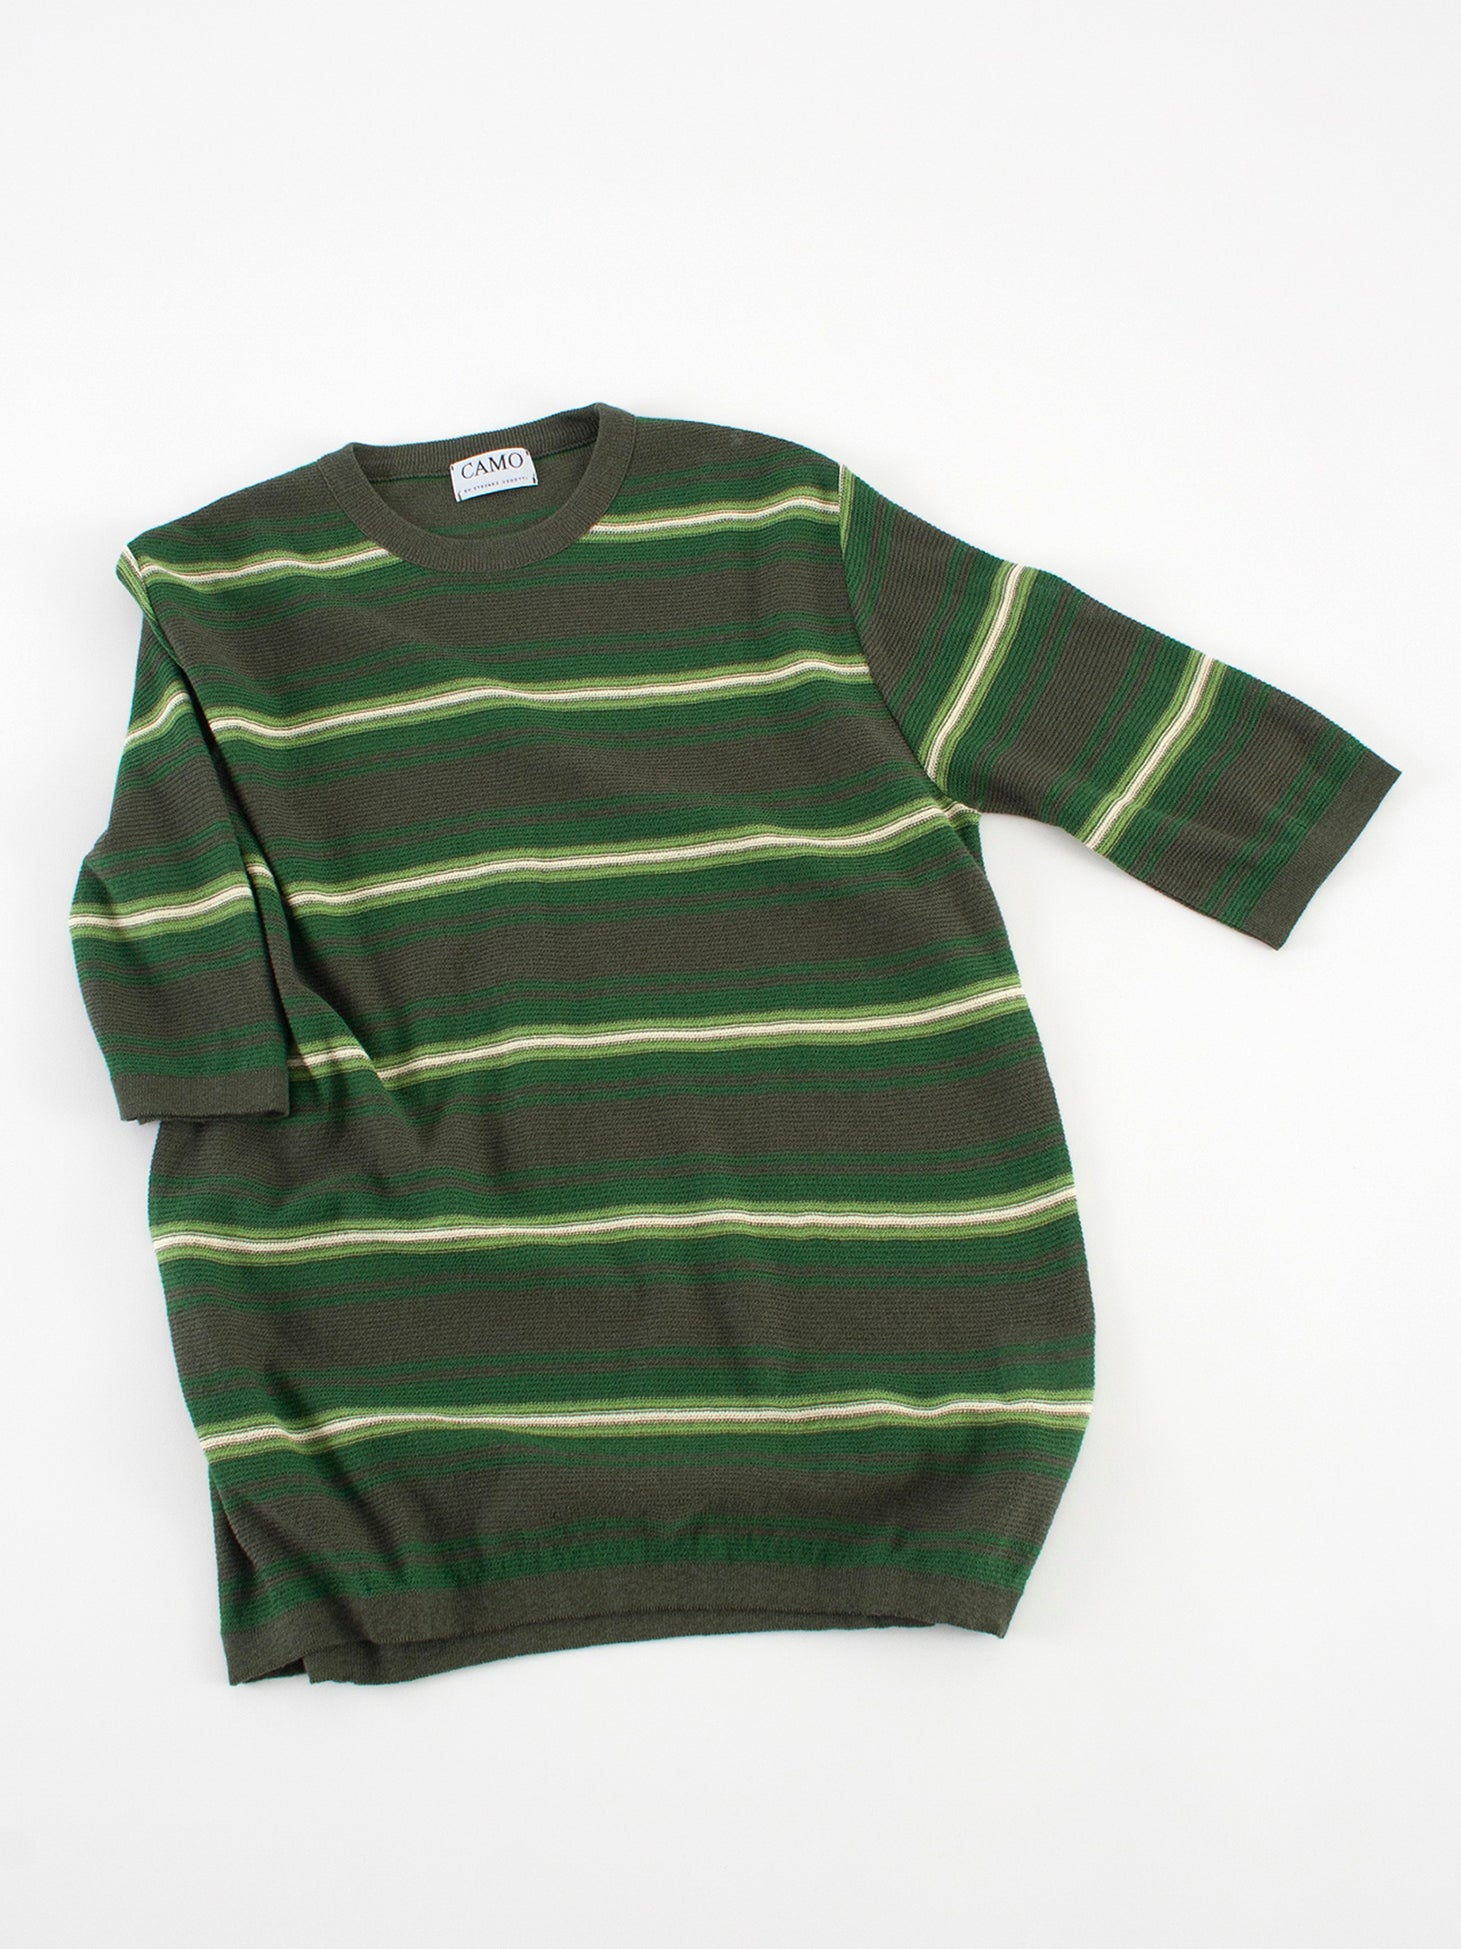 Camo Feystongal Knit T-shirt stripes Green